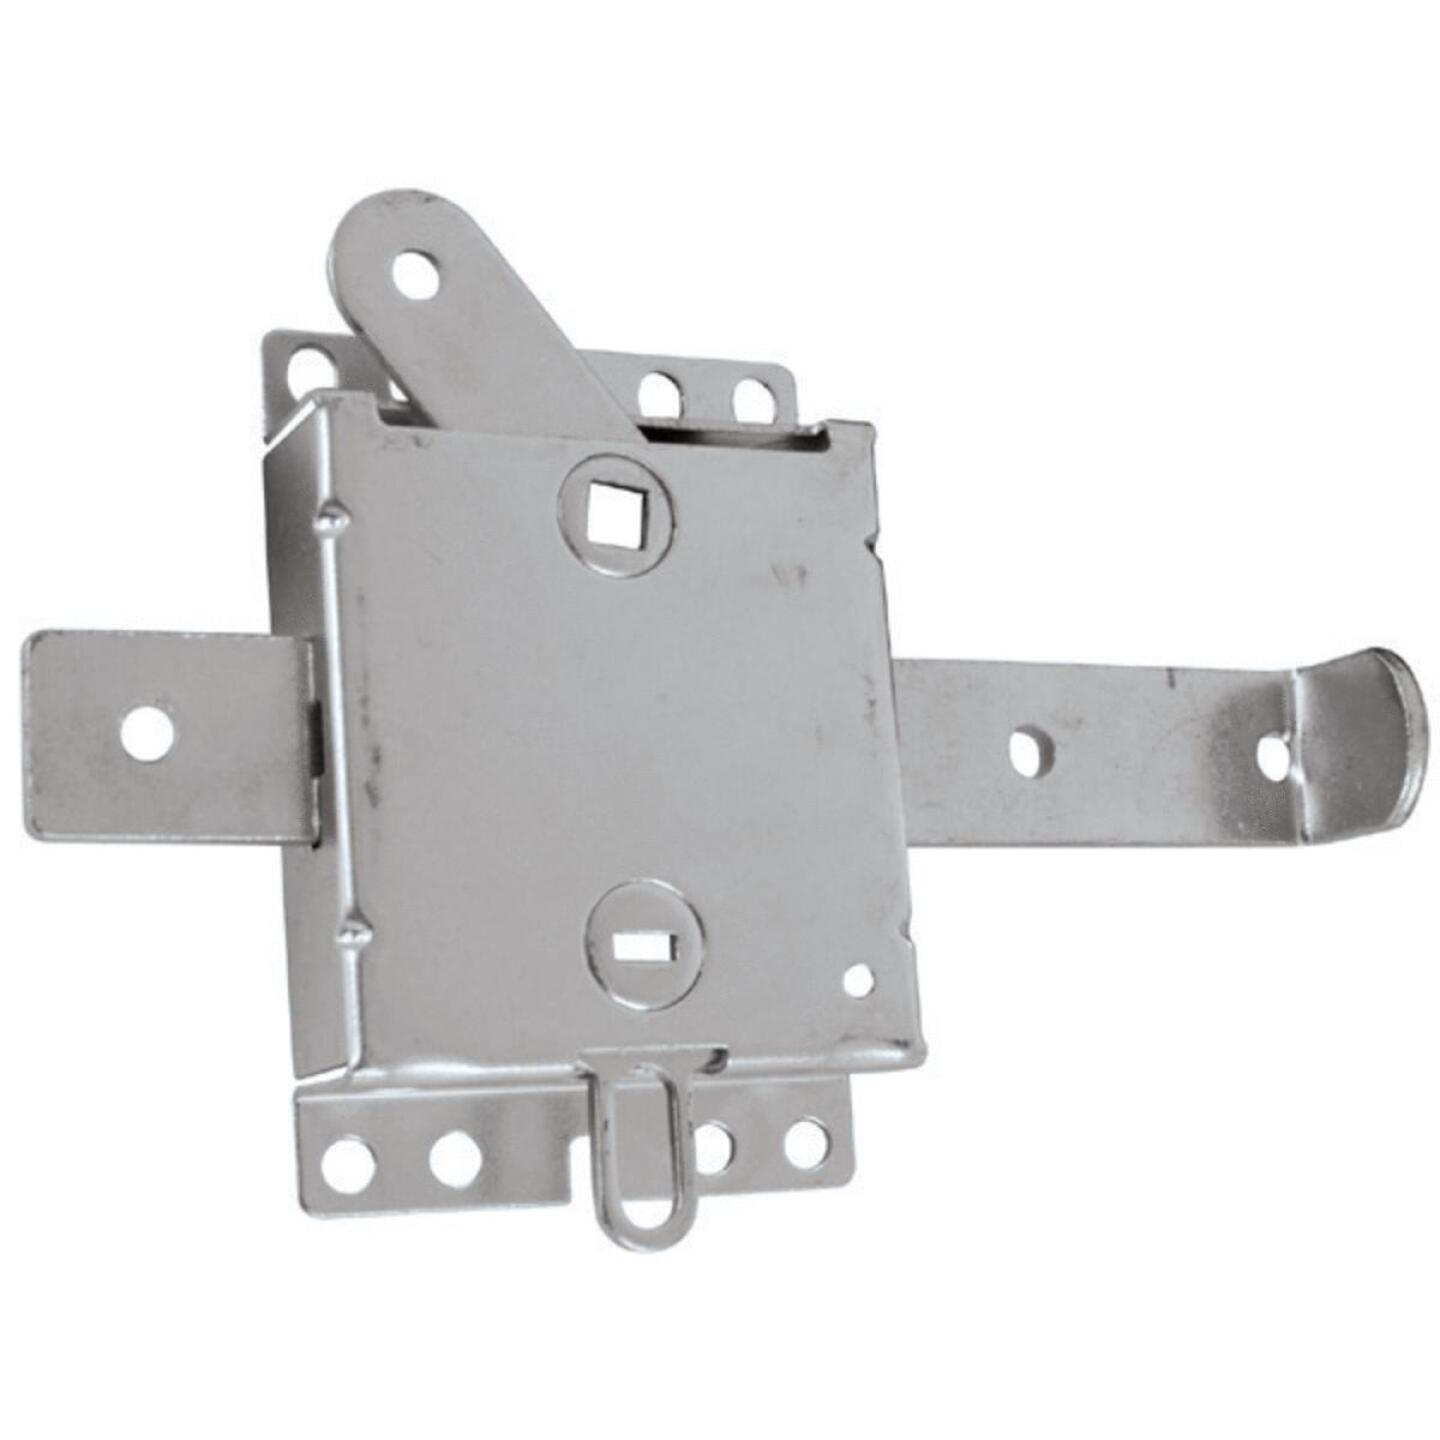 National 7-1/2 In. W. Garage Door Side Lock Image 2